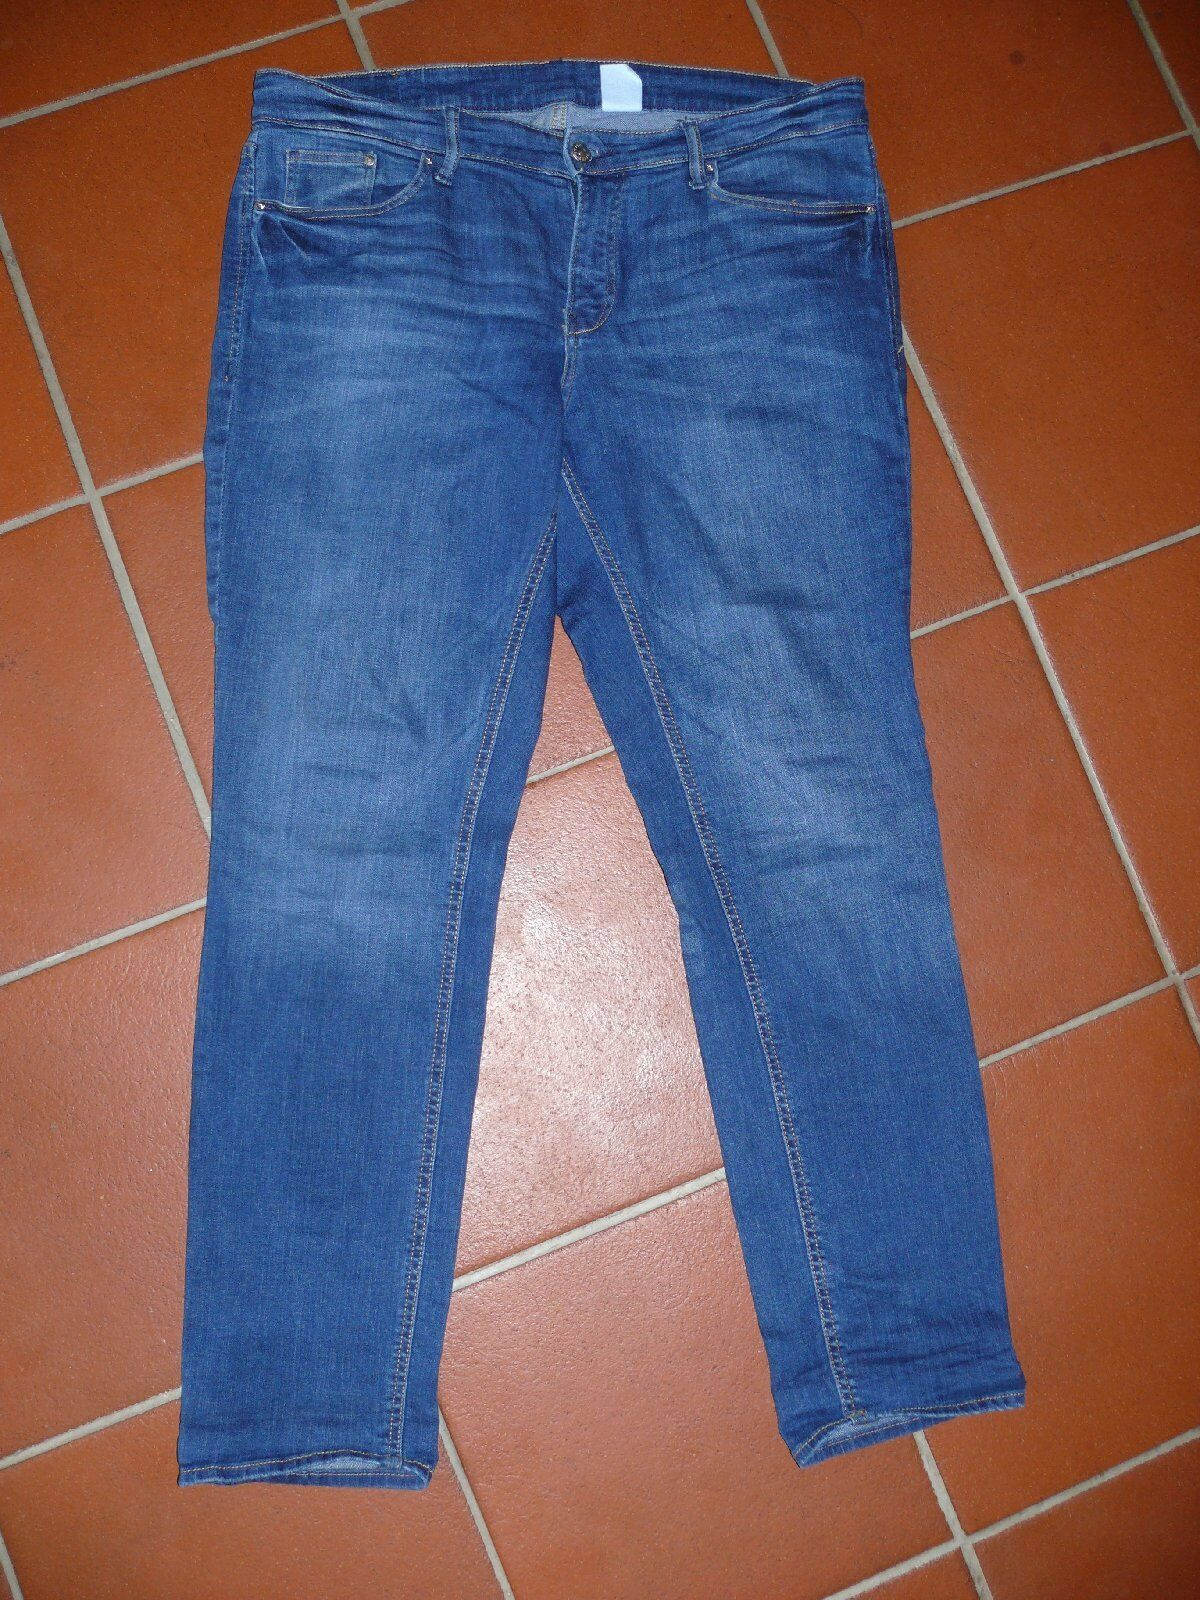 0545b35ea5a H M H M H M Denim Jeans Straight Regular Waist Size 48 Medium bluee 6710e9